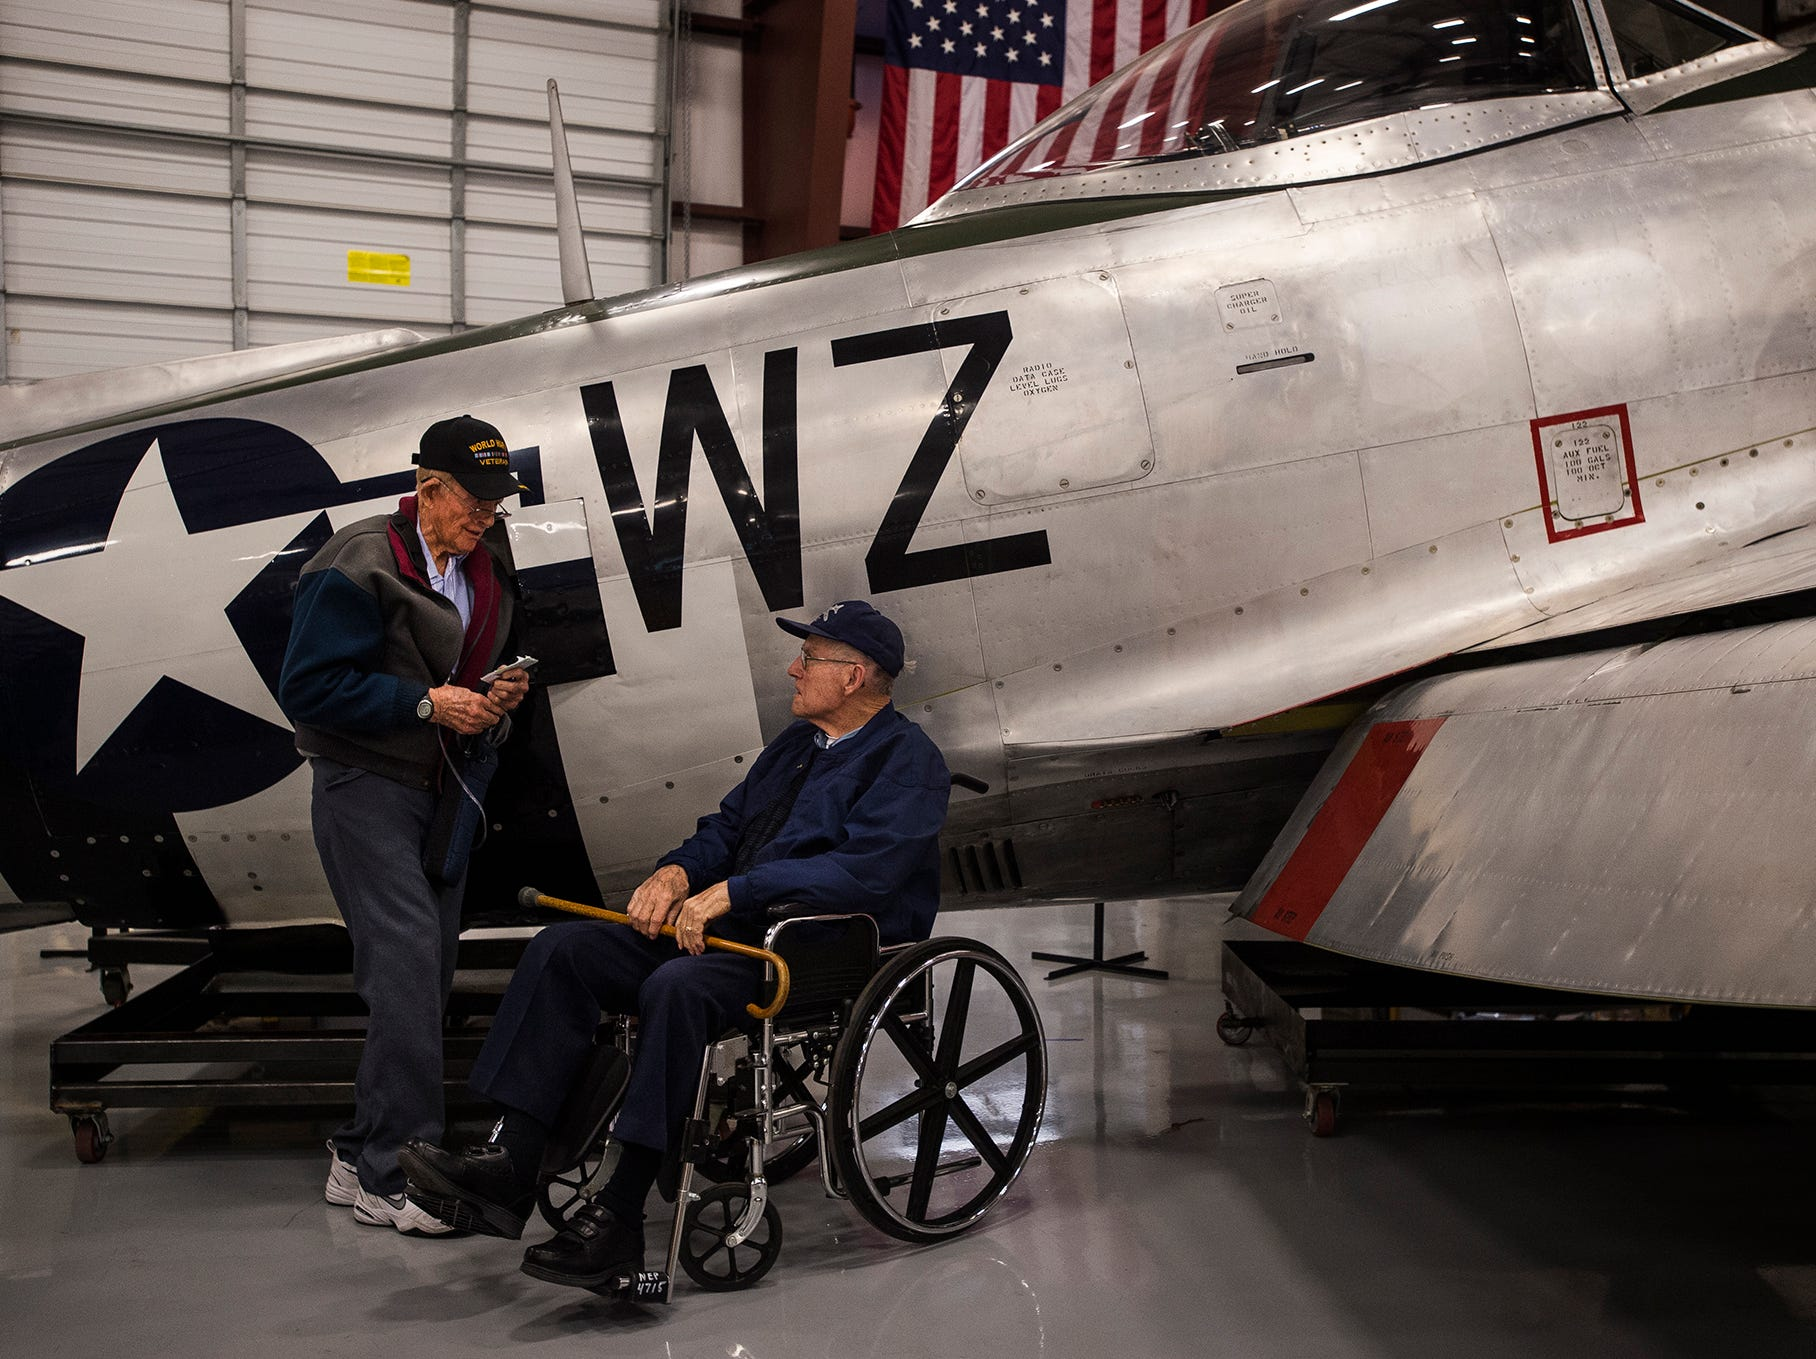 World War II Army Air Corp veterans Philip Daily, left, and Lee Bashor talk next to a Republic P47D-40 Thunderbolt fighter plane on Saturday, May 5, 2018, at the National Museum of World War II Aviation in Colorado Springs, Colo.